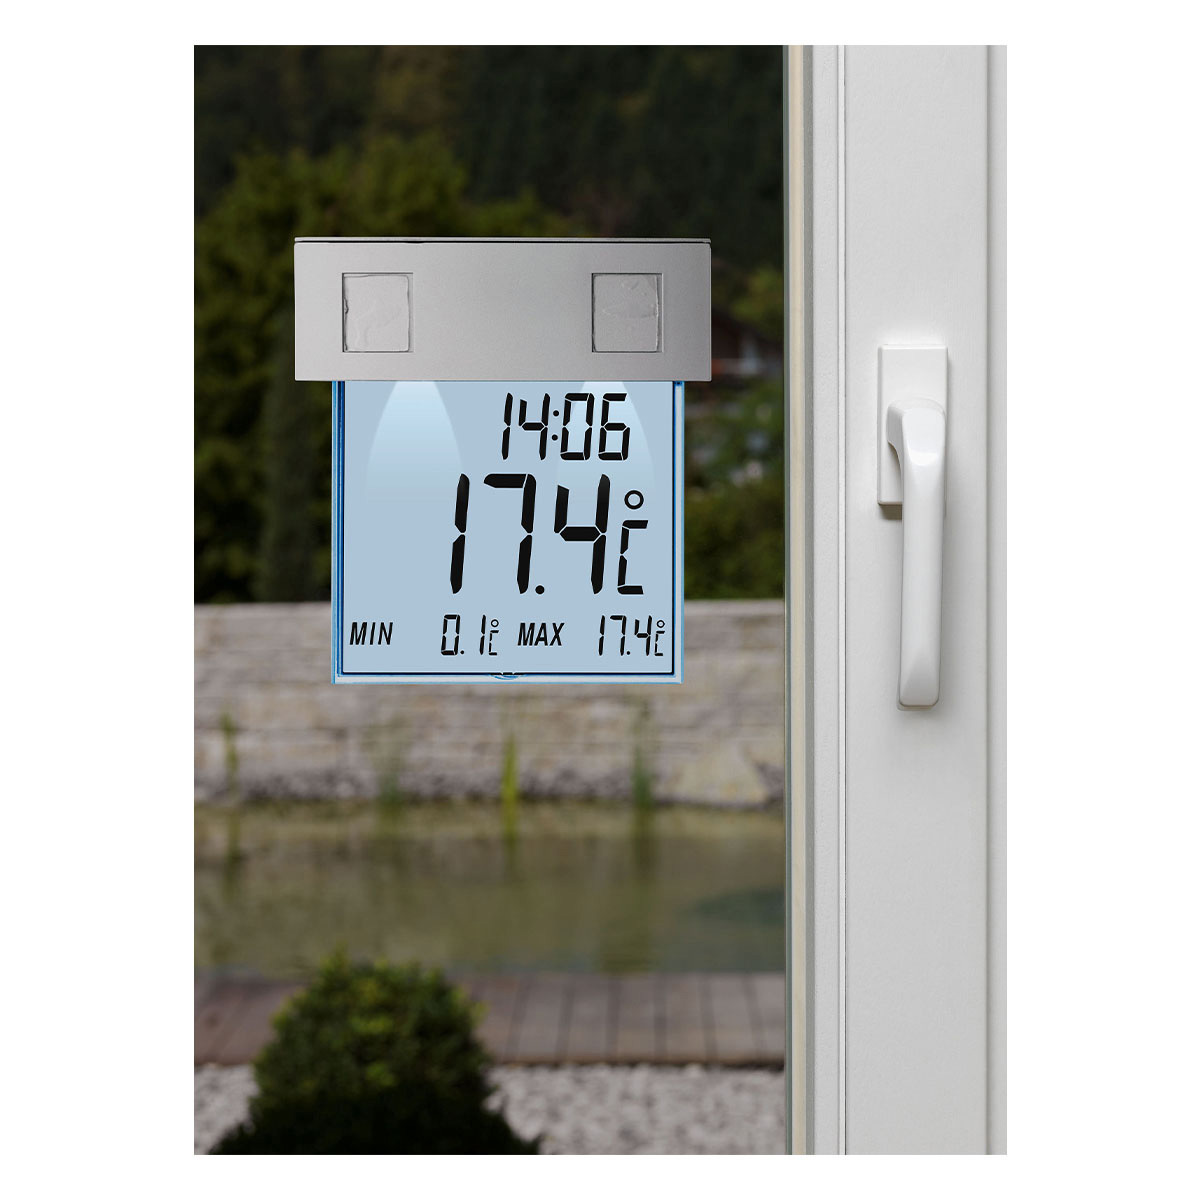 30-1035-digitales-fensterthermometer-mit-solarbeleuchtung-vision-solar-anwendung-1200x1200px.jpg